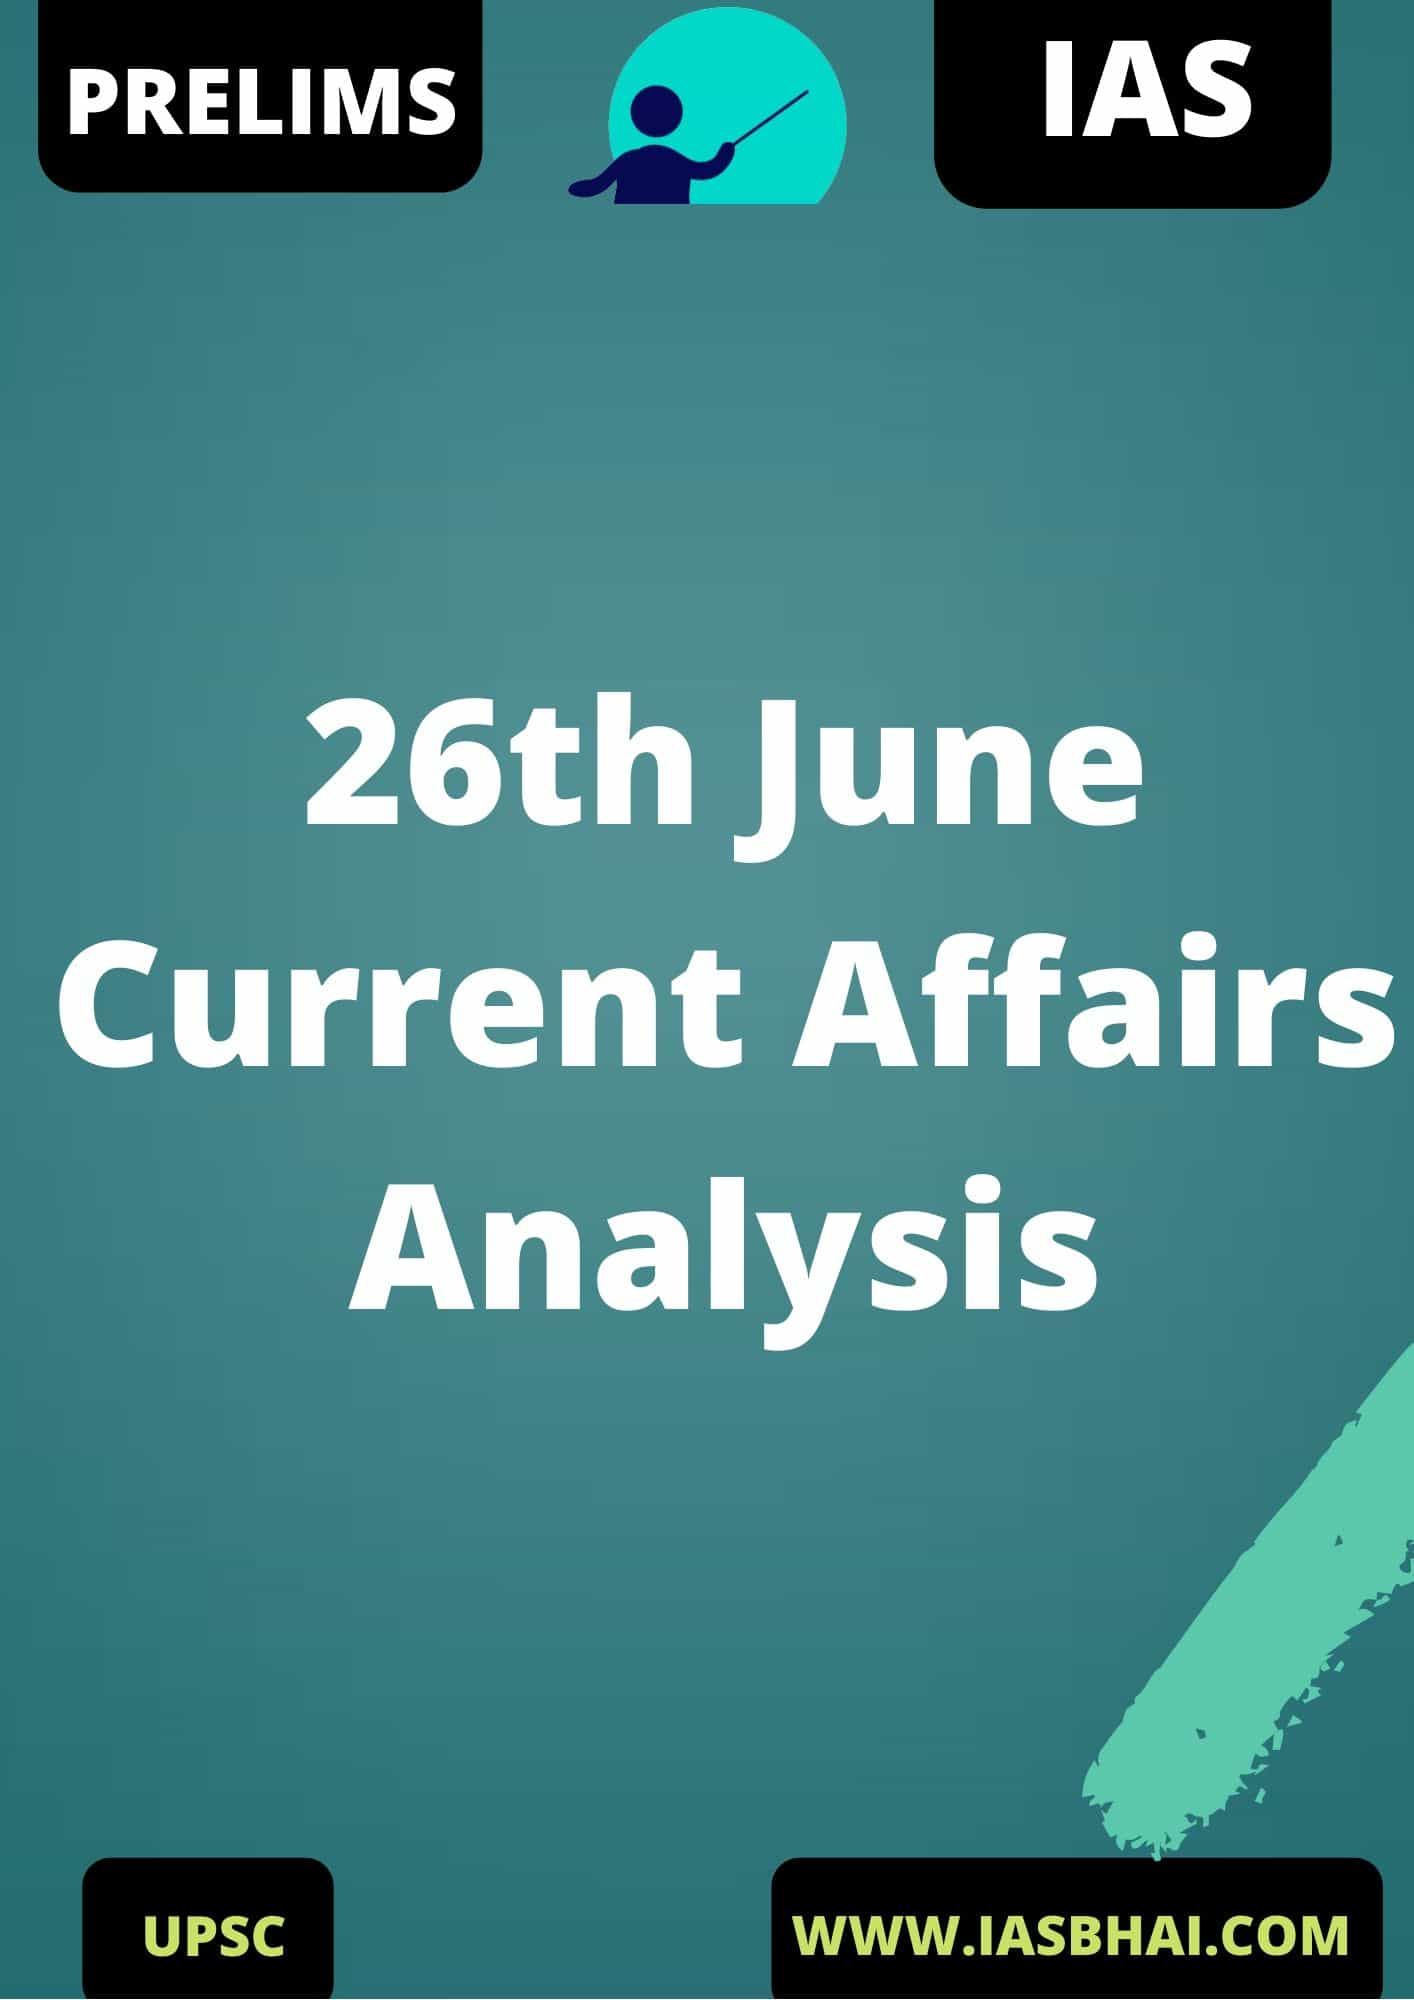 26th June Current Affairs News Analysis Prelims & Mains 2020